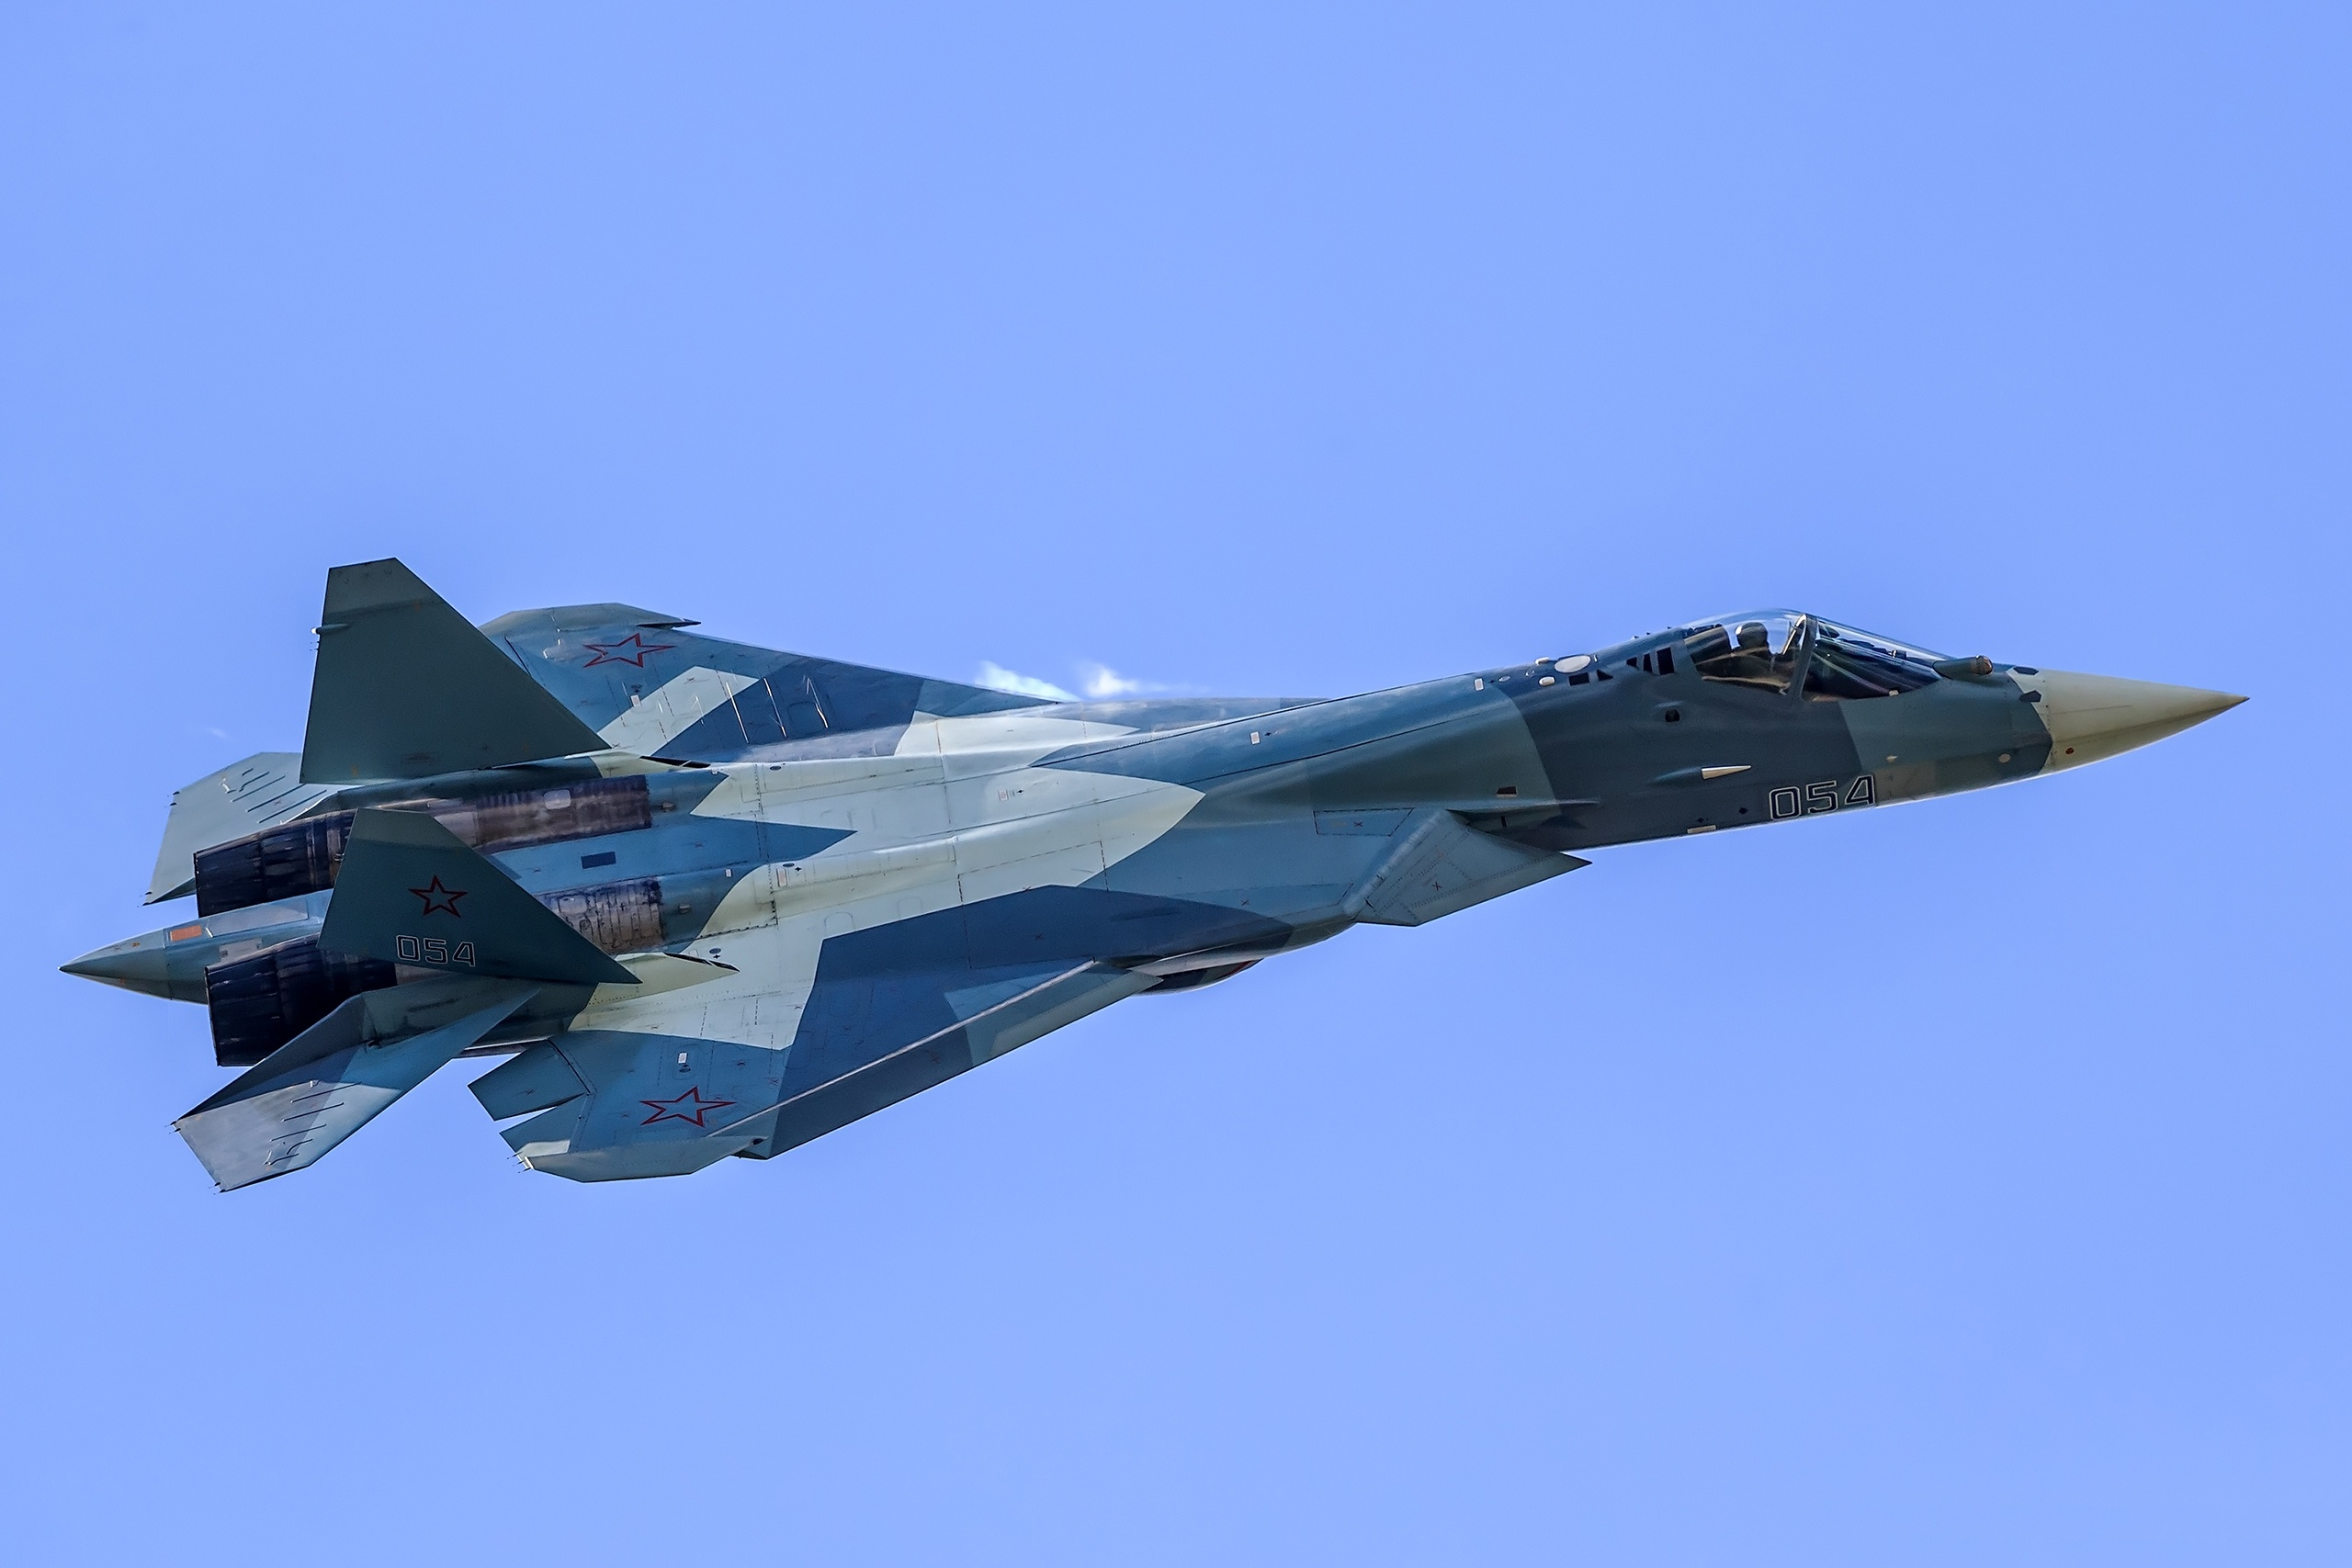 Sukhoi Su-57 Full HD Wallpaper and Background Image ...